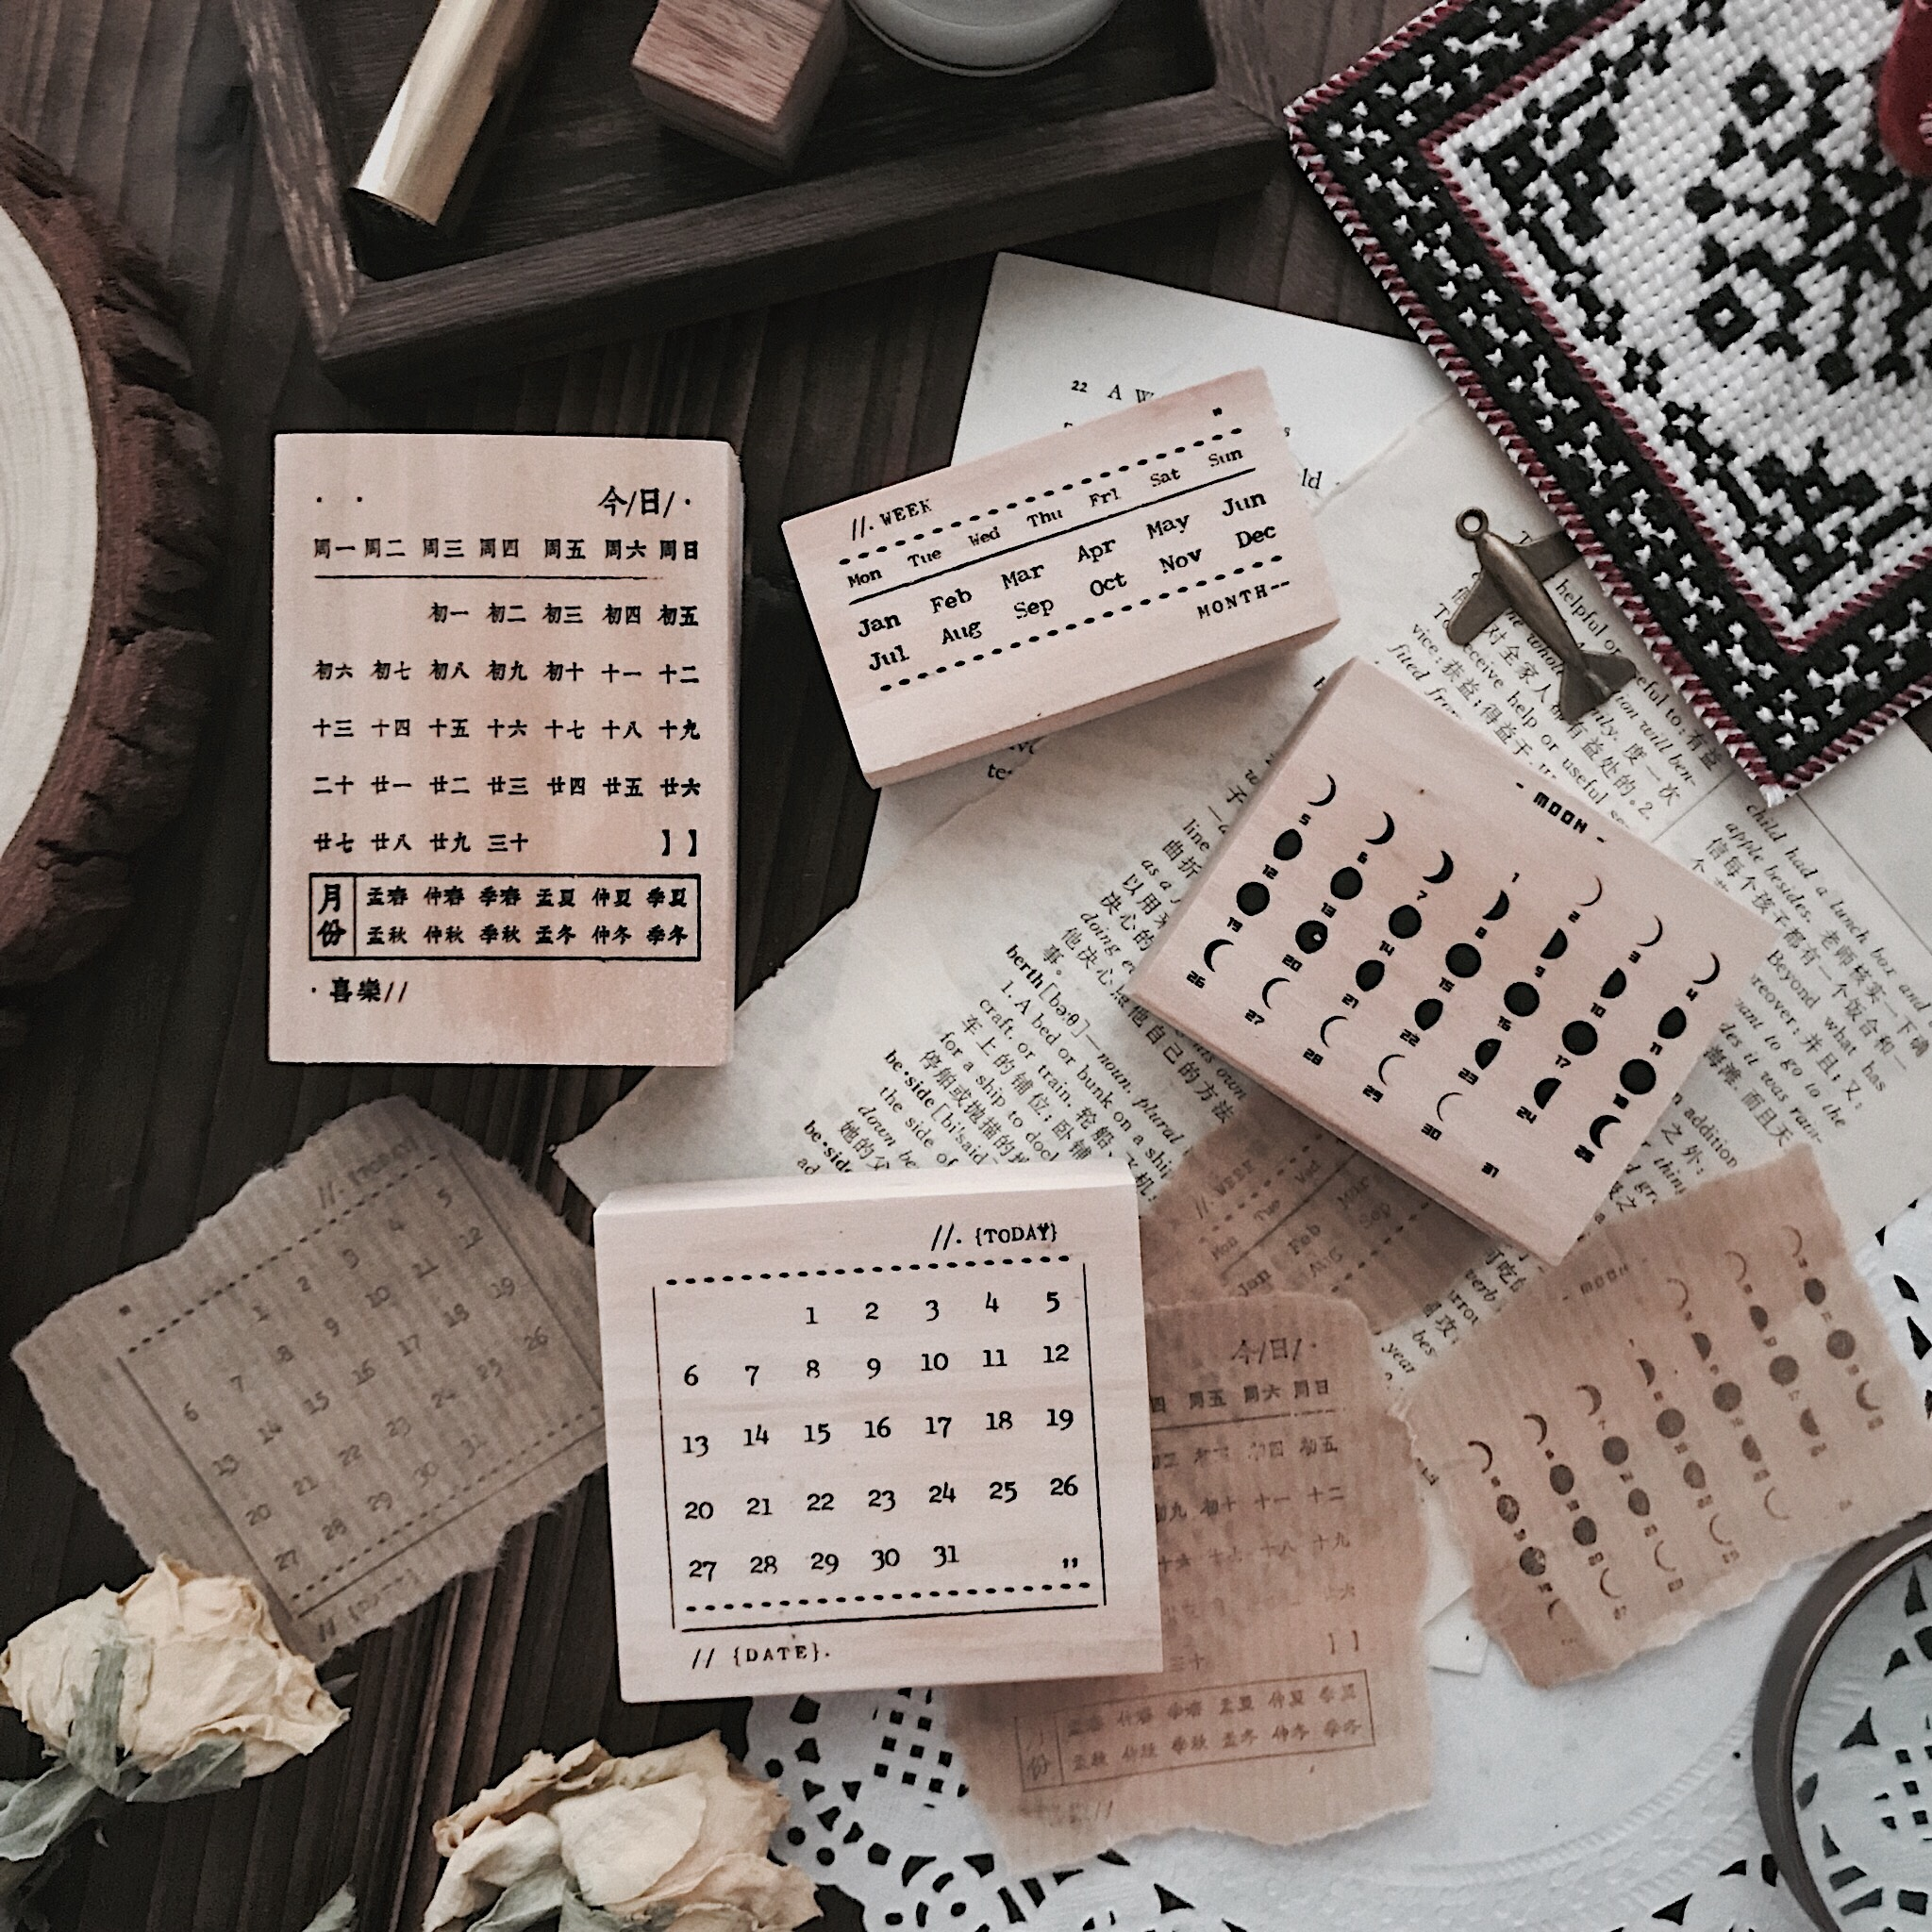 1 Pcs Based On Series Calendar Wood Stamp Wooden Rubber Stamps For Scrapbooking Handmade Card Diy Stamp Photo Album Craft Gifts